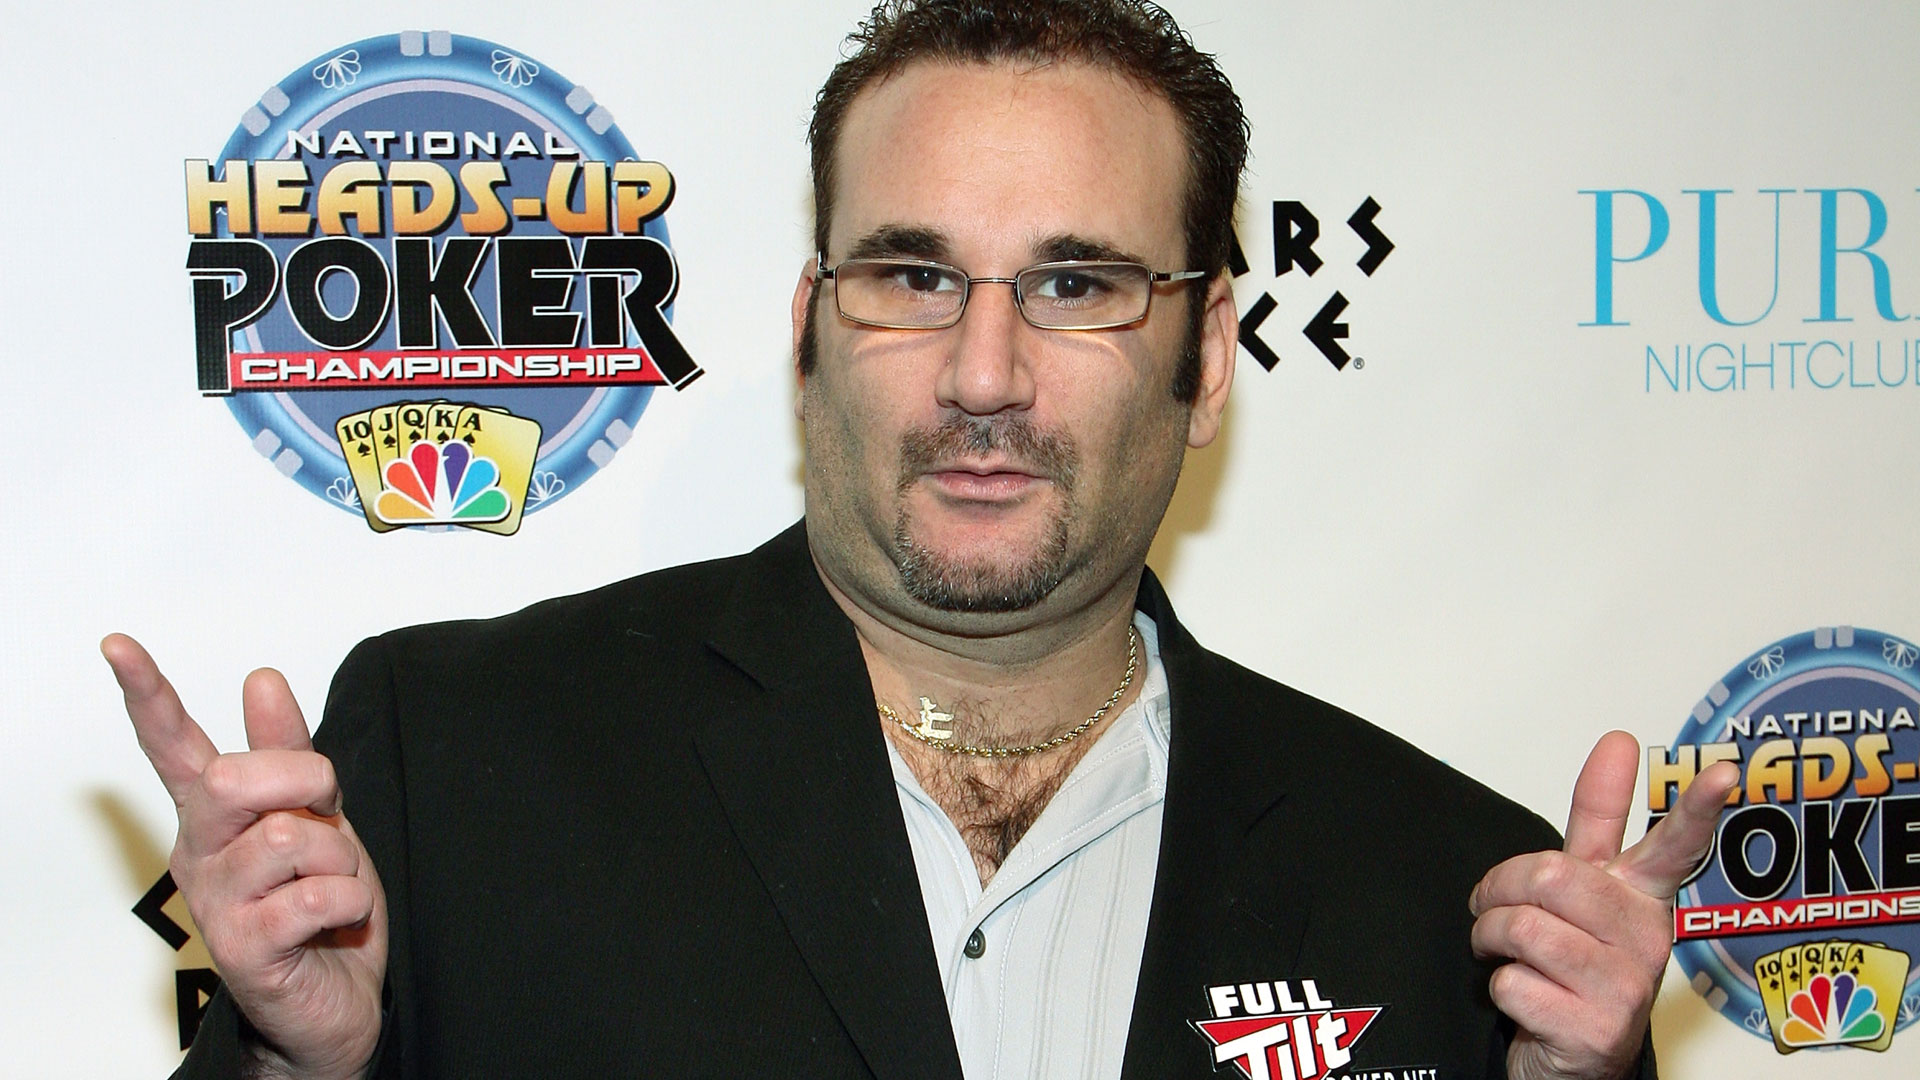 Mike Matusow poker